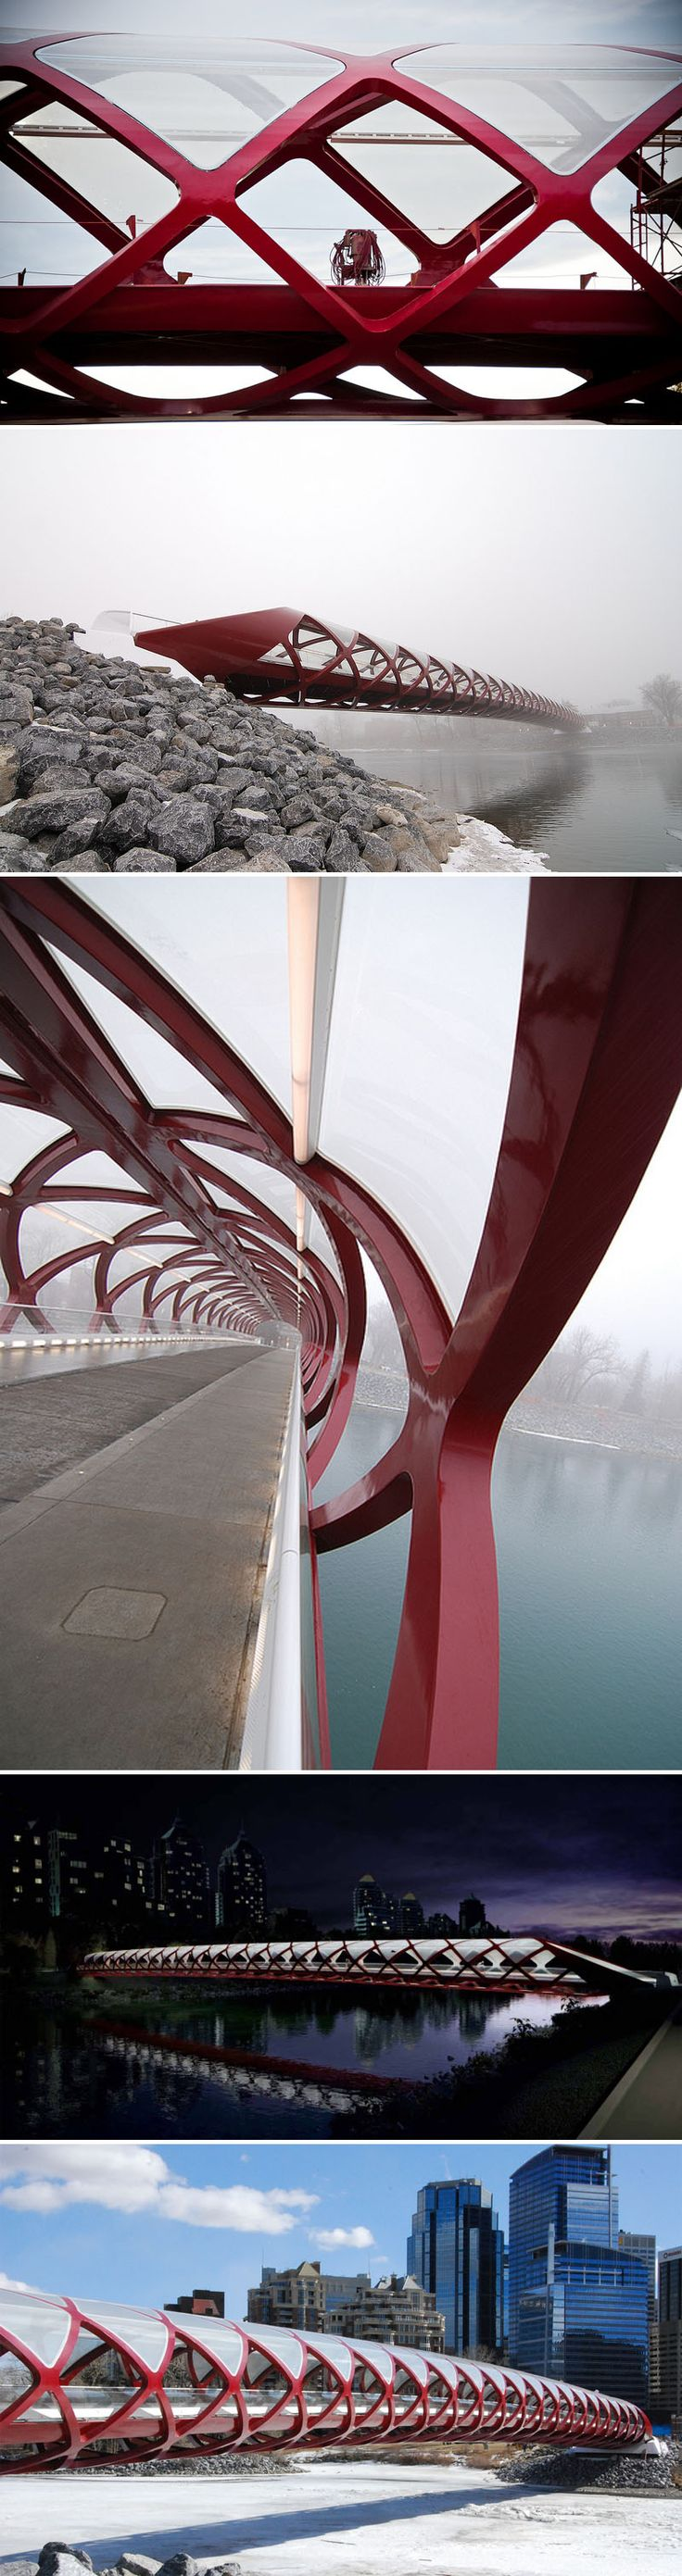 some cool views of our new Peace Bridge in Calgary - Santiago Calatrava designed